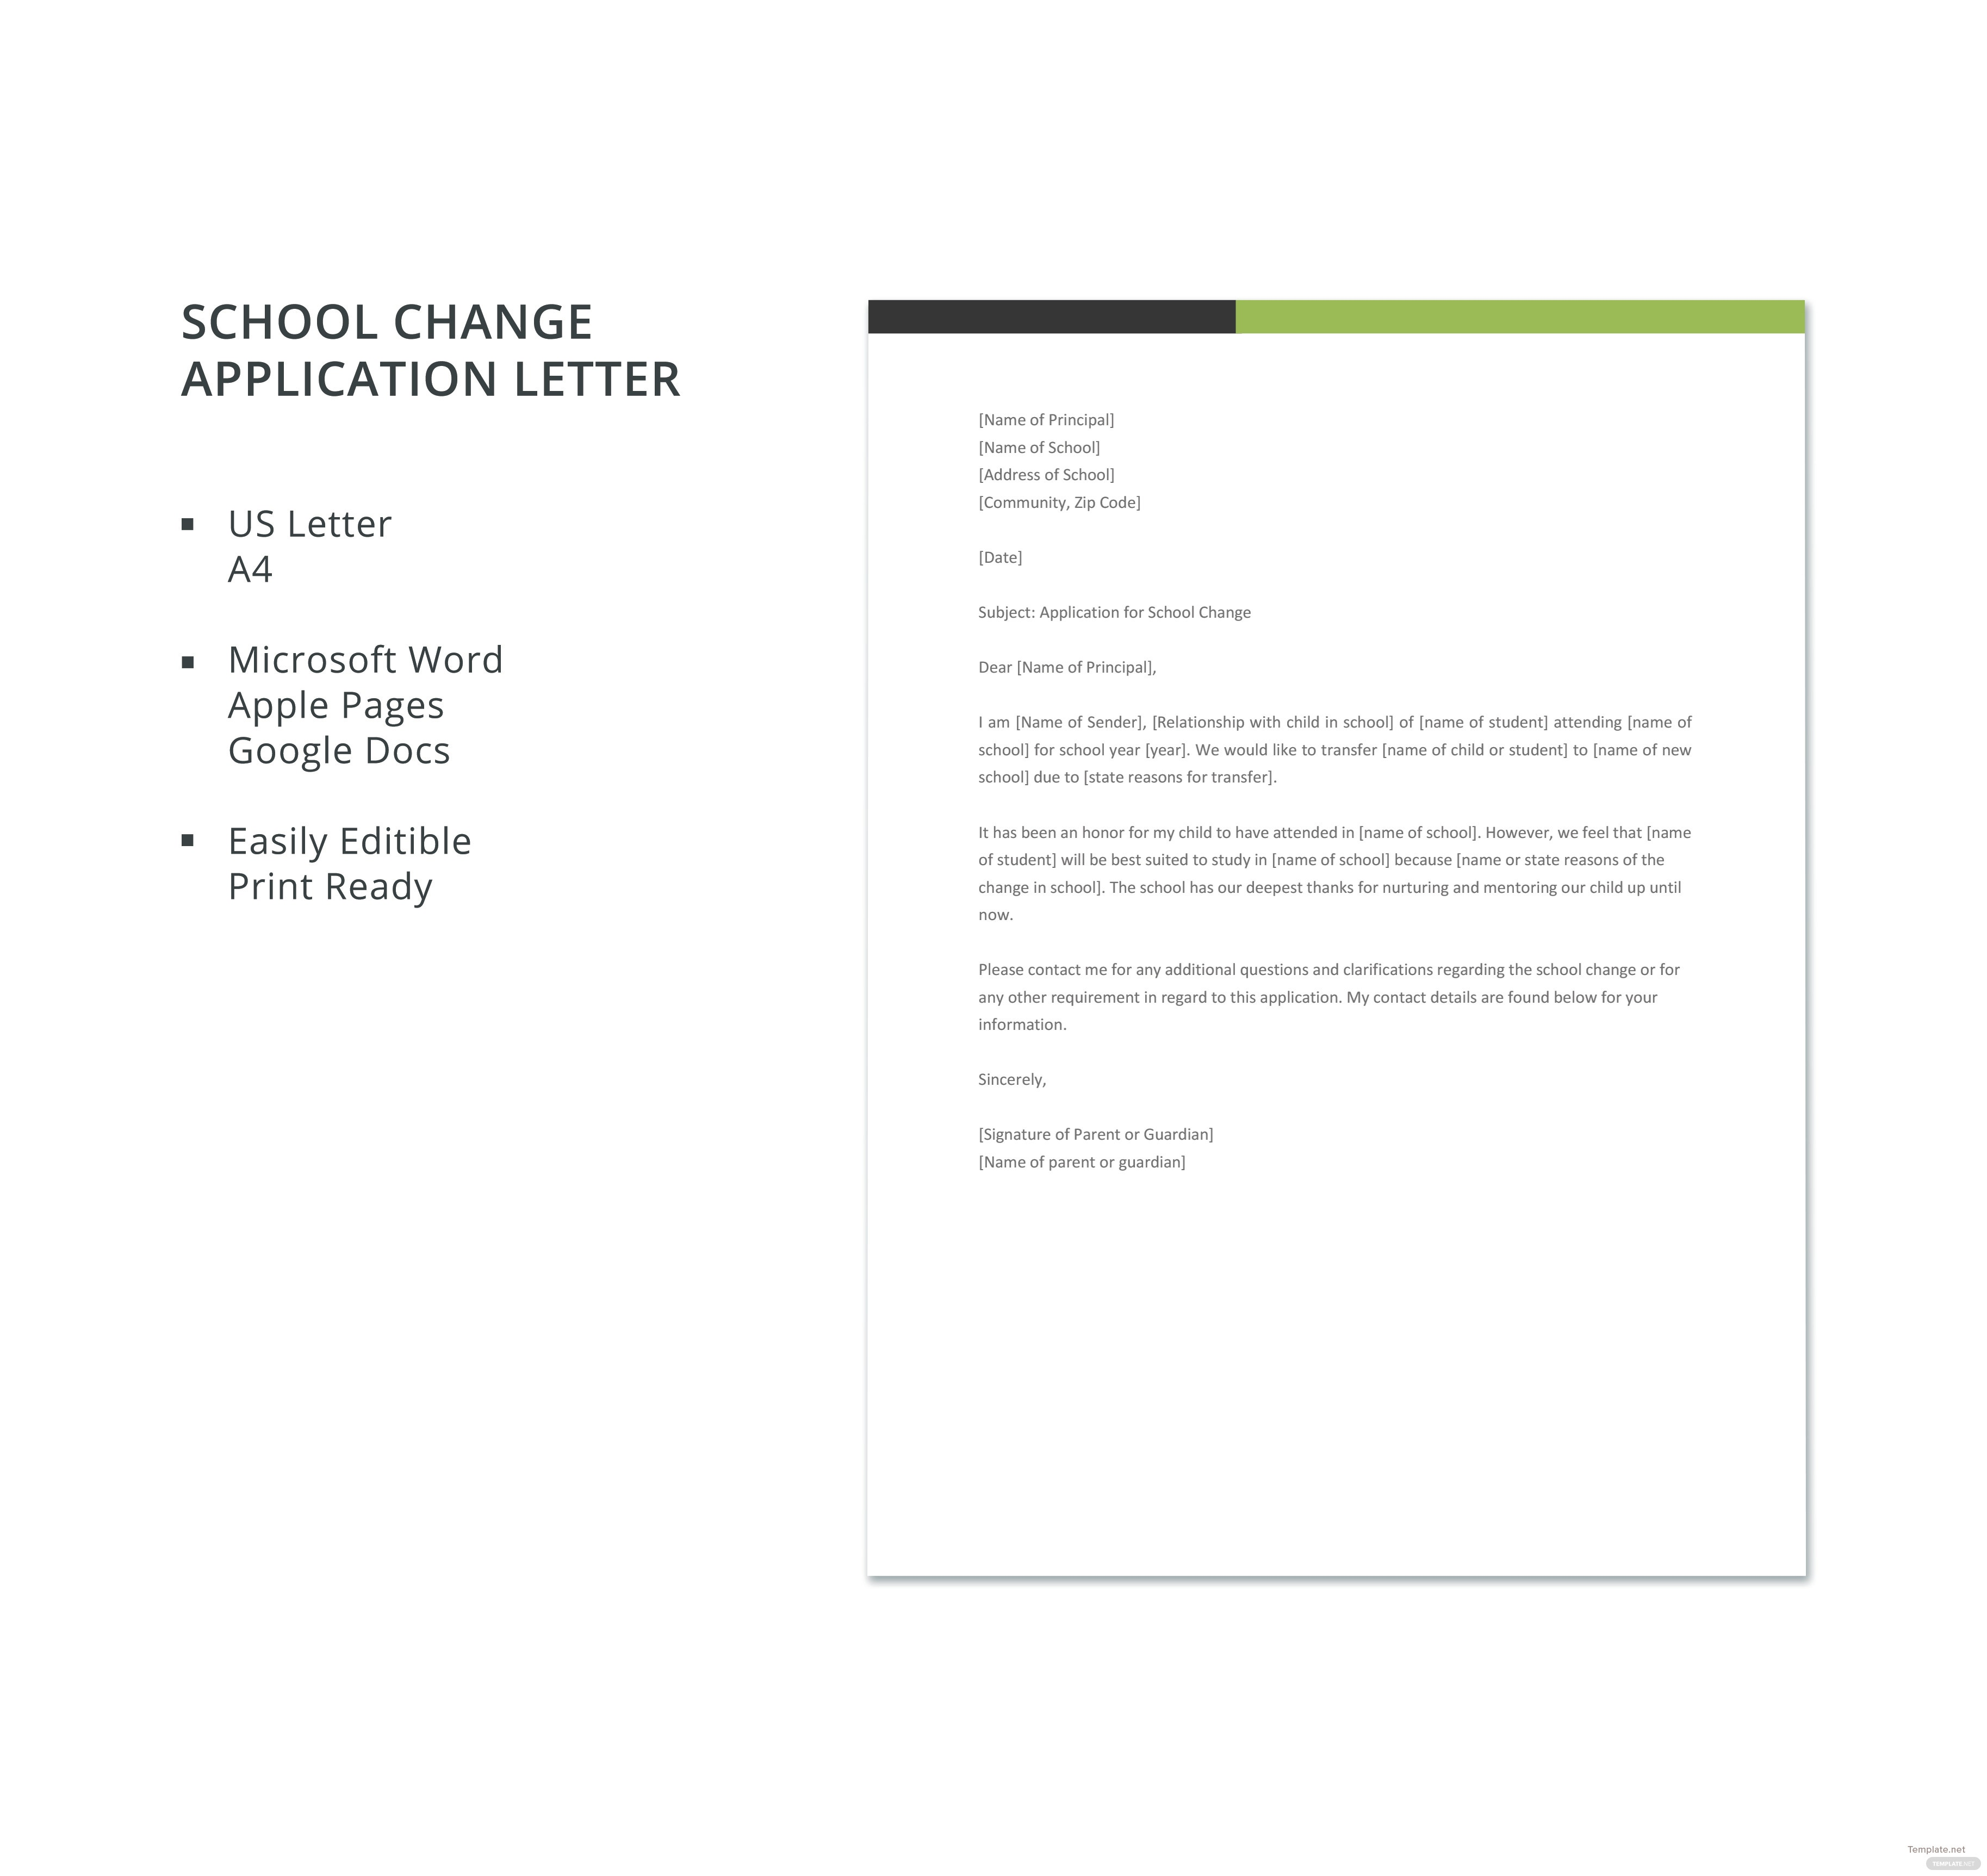 School change application letter template in microsoft word apple click to see full template school change application letter spiritdancerdesigns Image collections